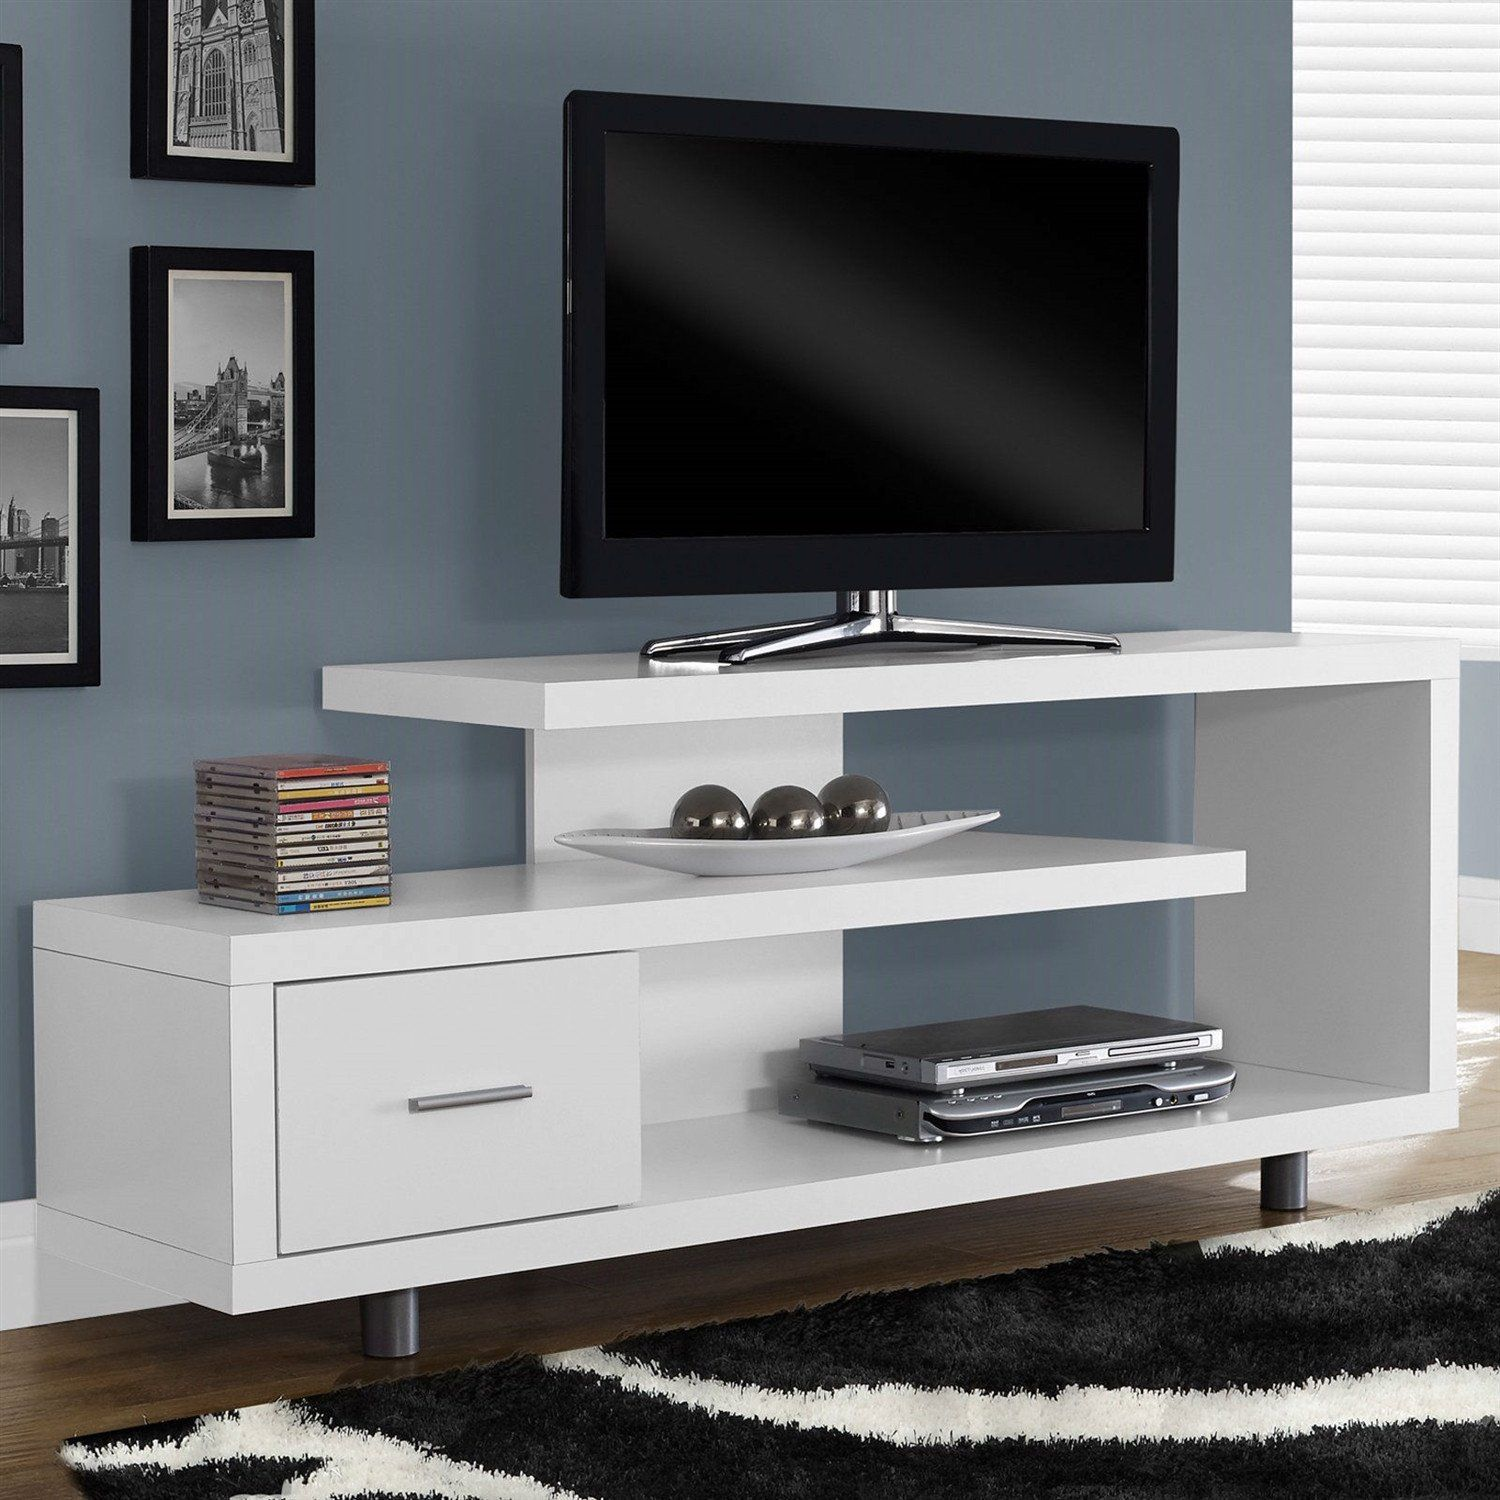 White Modern Tv Stand Fits Up To 60 Inch Flat Screen Tv Tv